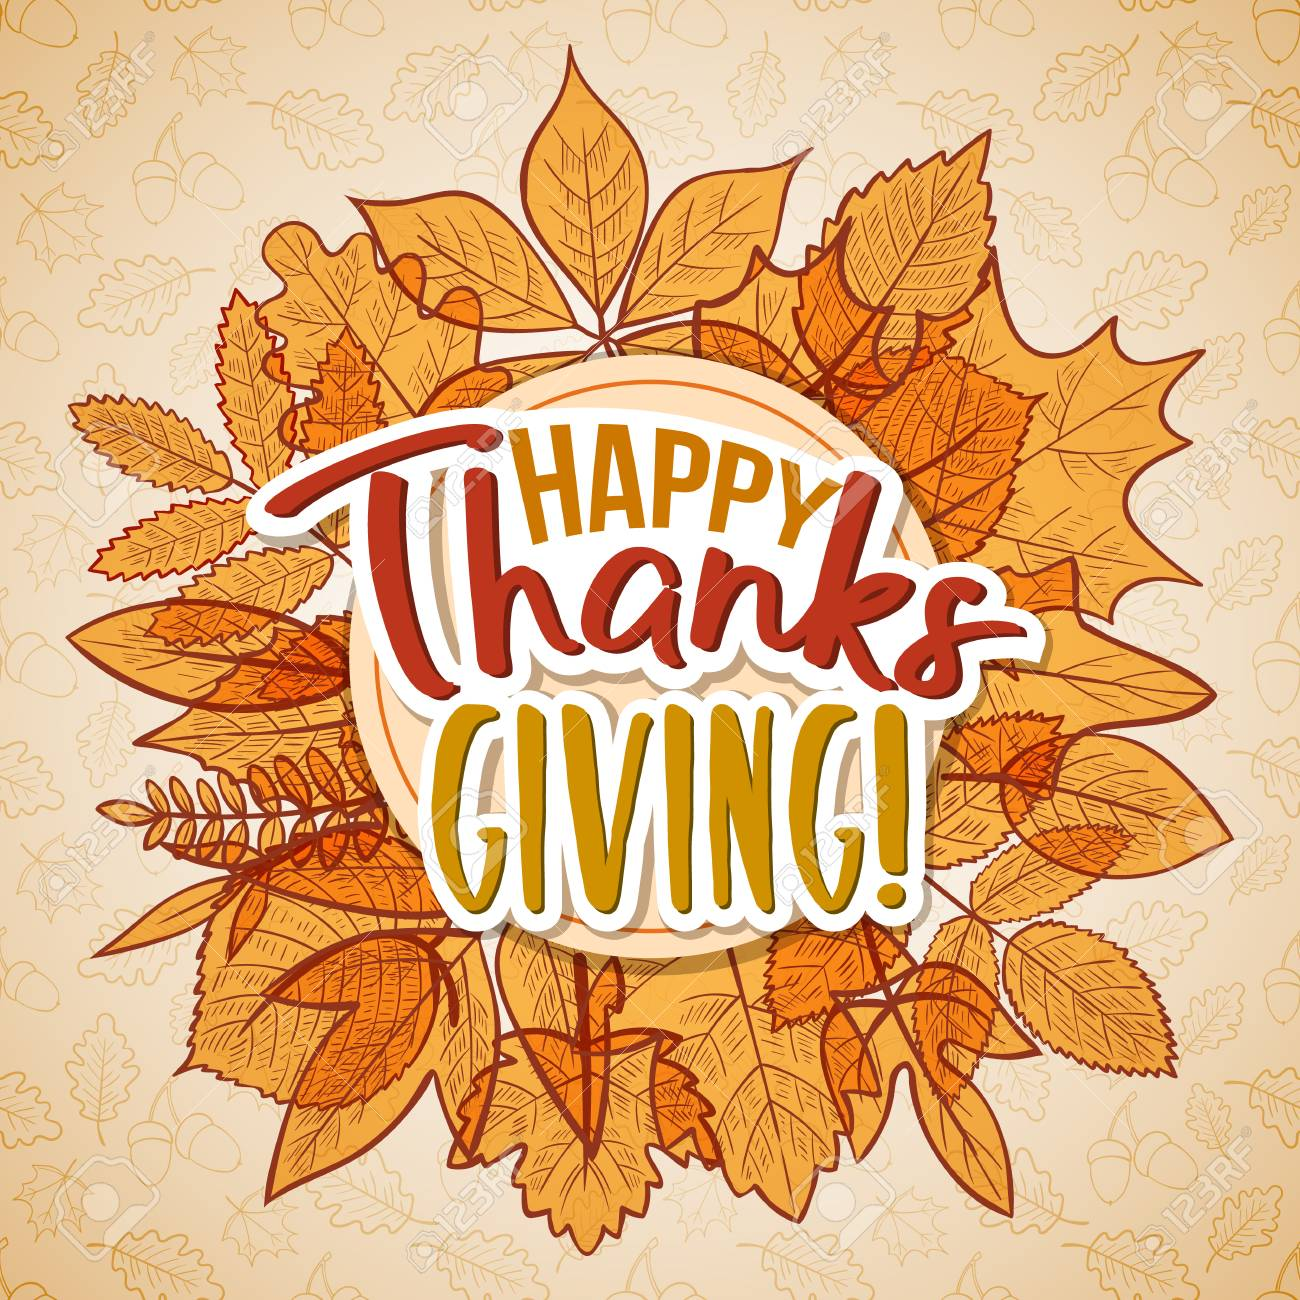 Thanksgiving Day Greetings And Autumn Leaves Cartoon Illustration